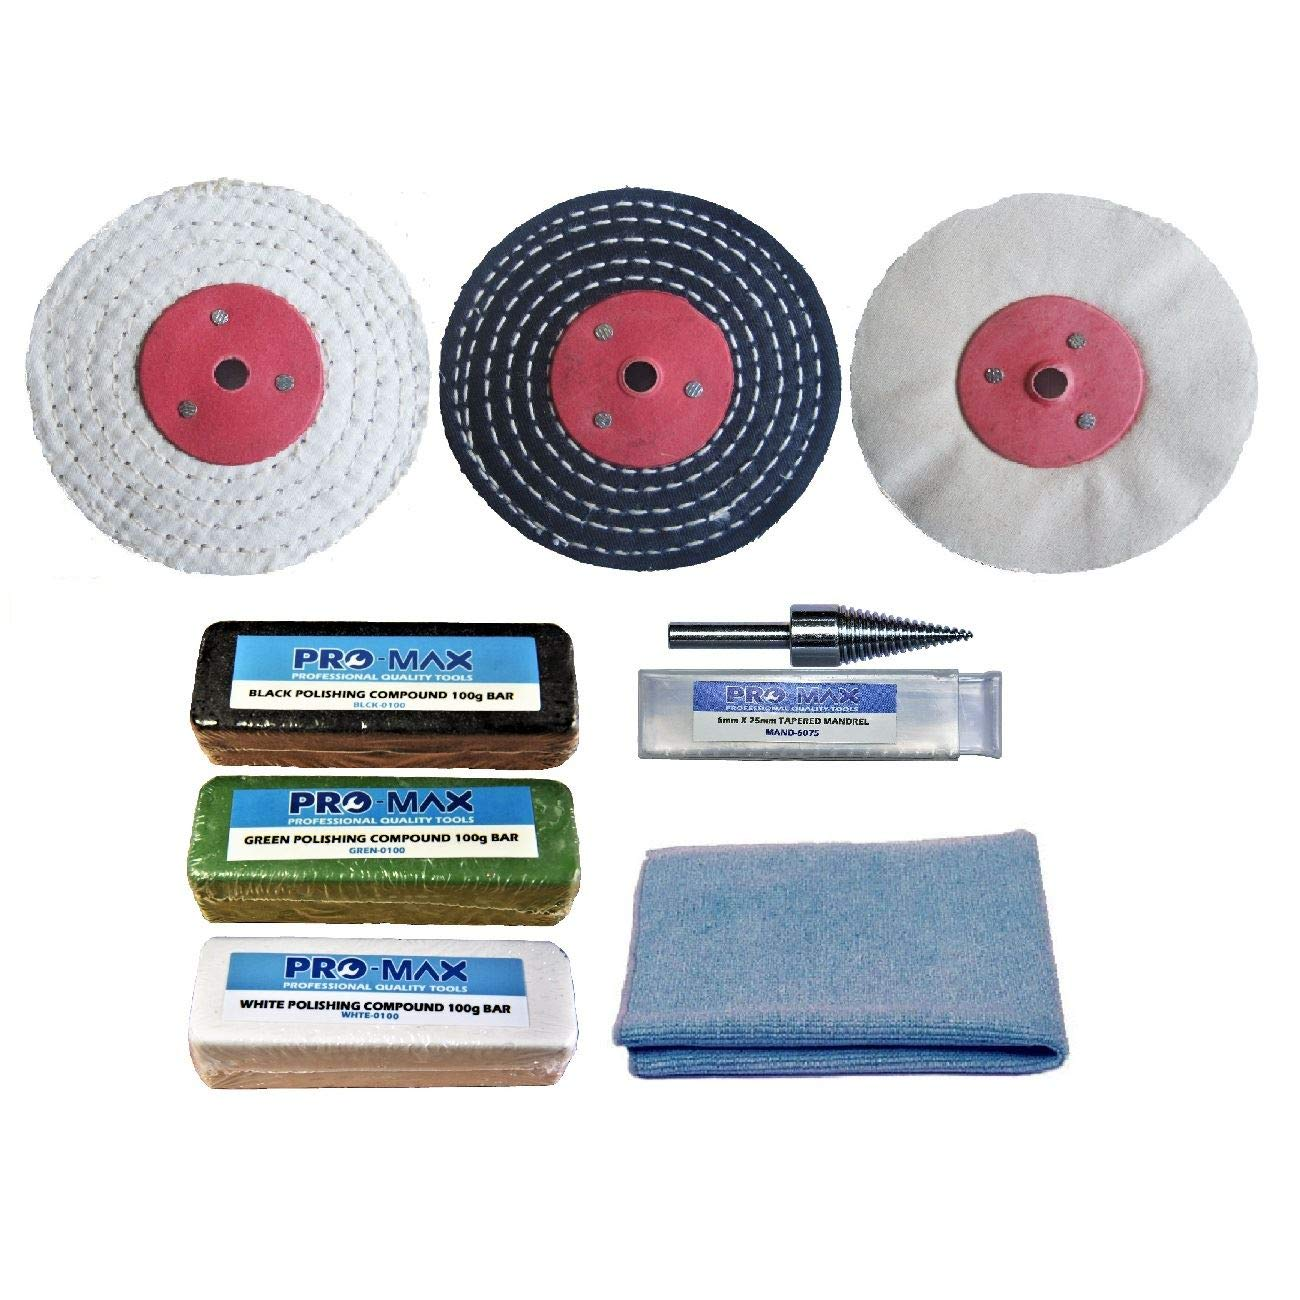 Steel & Stainless Steel 4' x 1' Metal Polishing Buffing Kit Pro-Max Pro-Max Quality Tools & Accessories